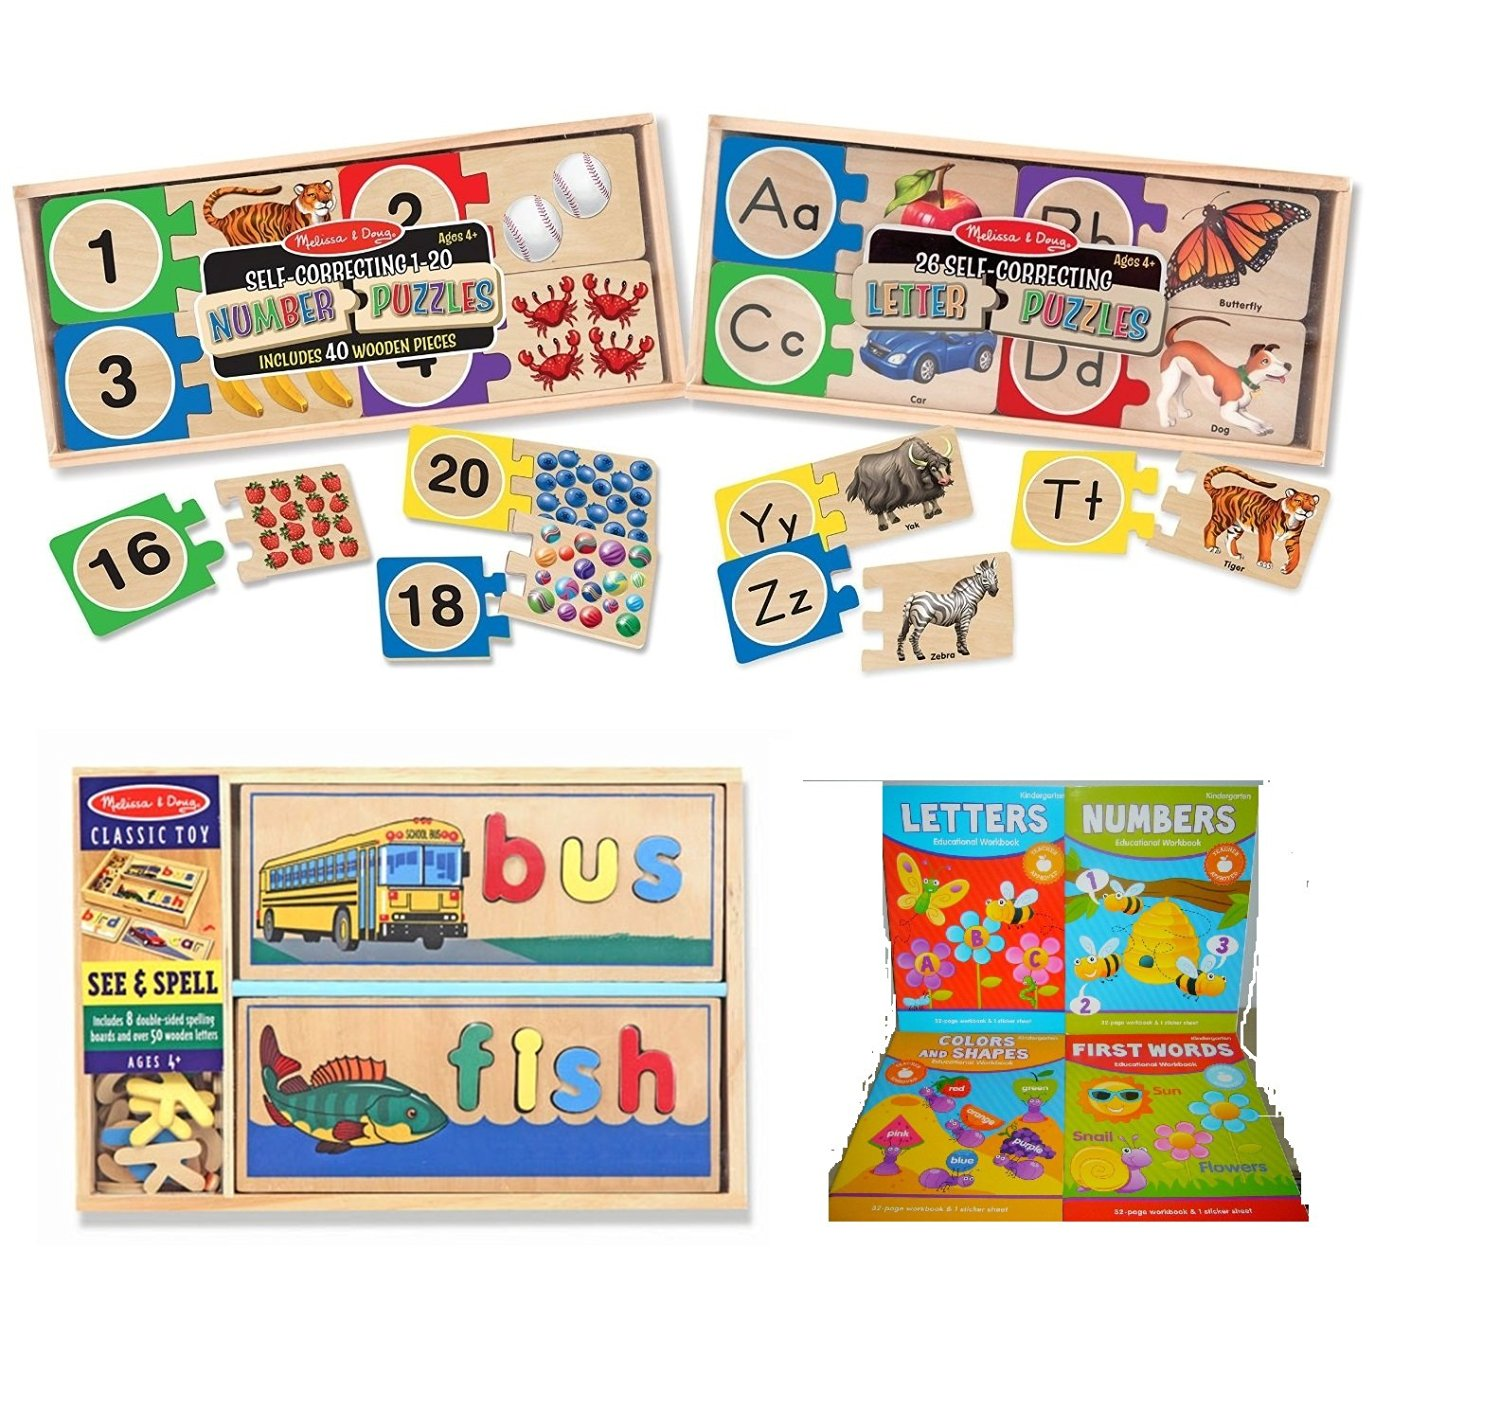 Melissa & Doug Skills Puzzles: Number Puzzle, Letter Puzzle and See & Spell with (1) BONUS Kindergarten Educational Workbook